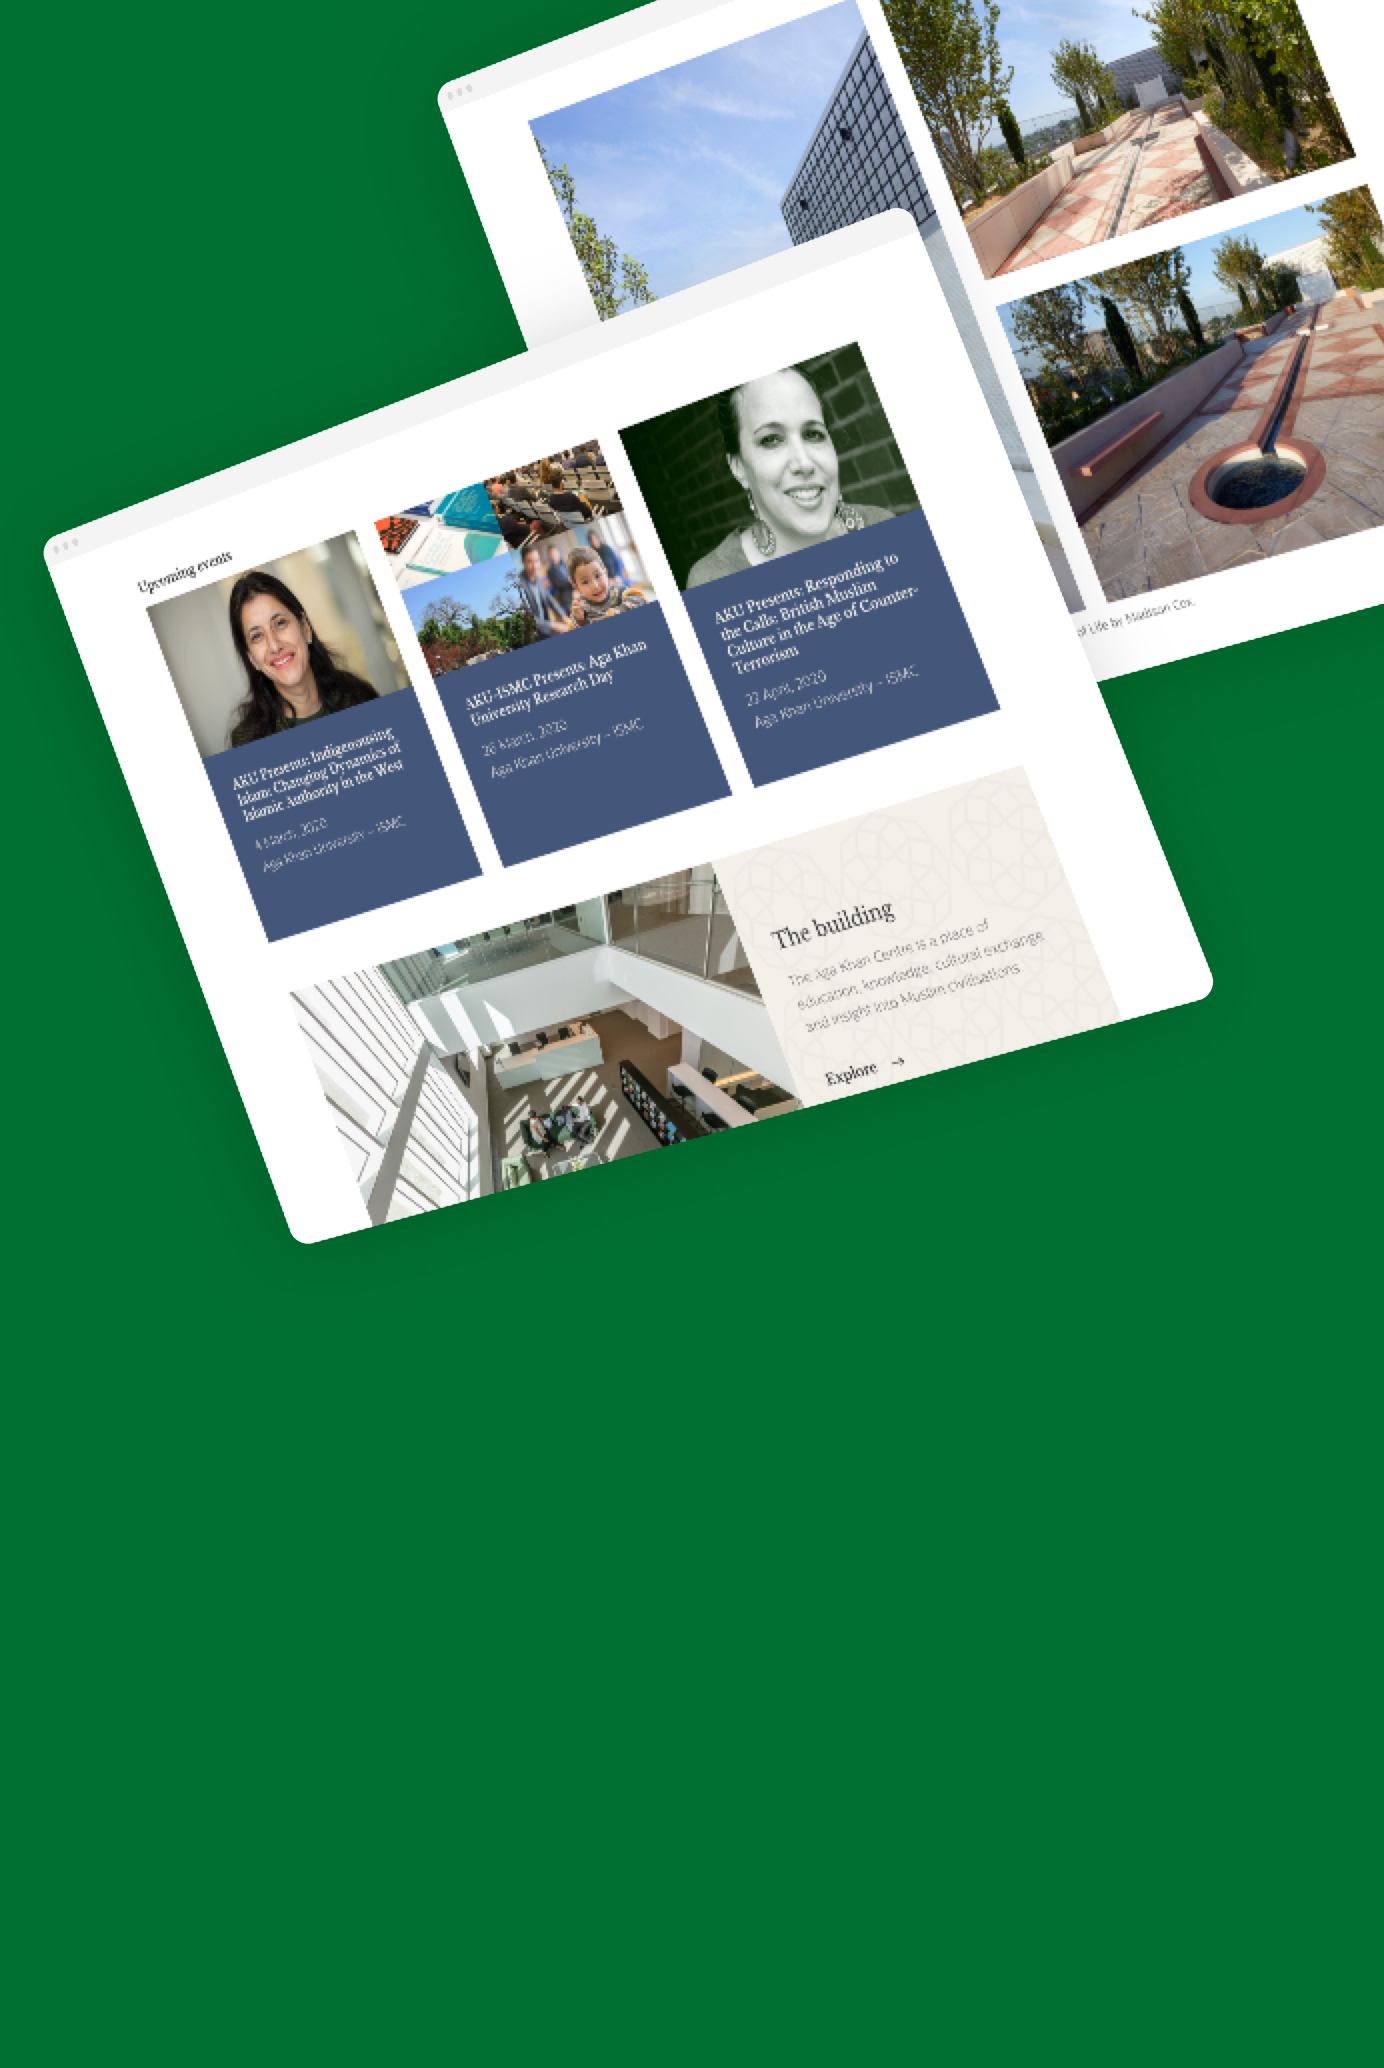 A welcoming website for an education centre in London